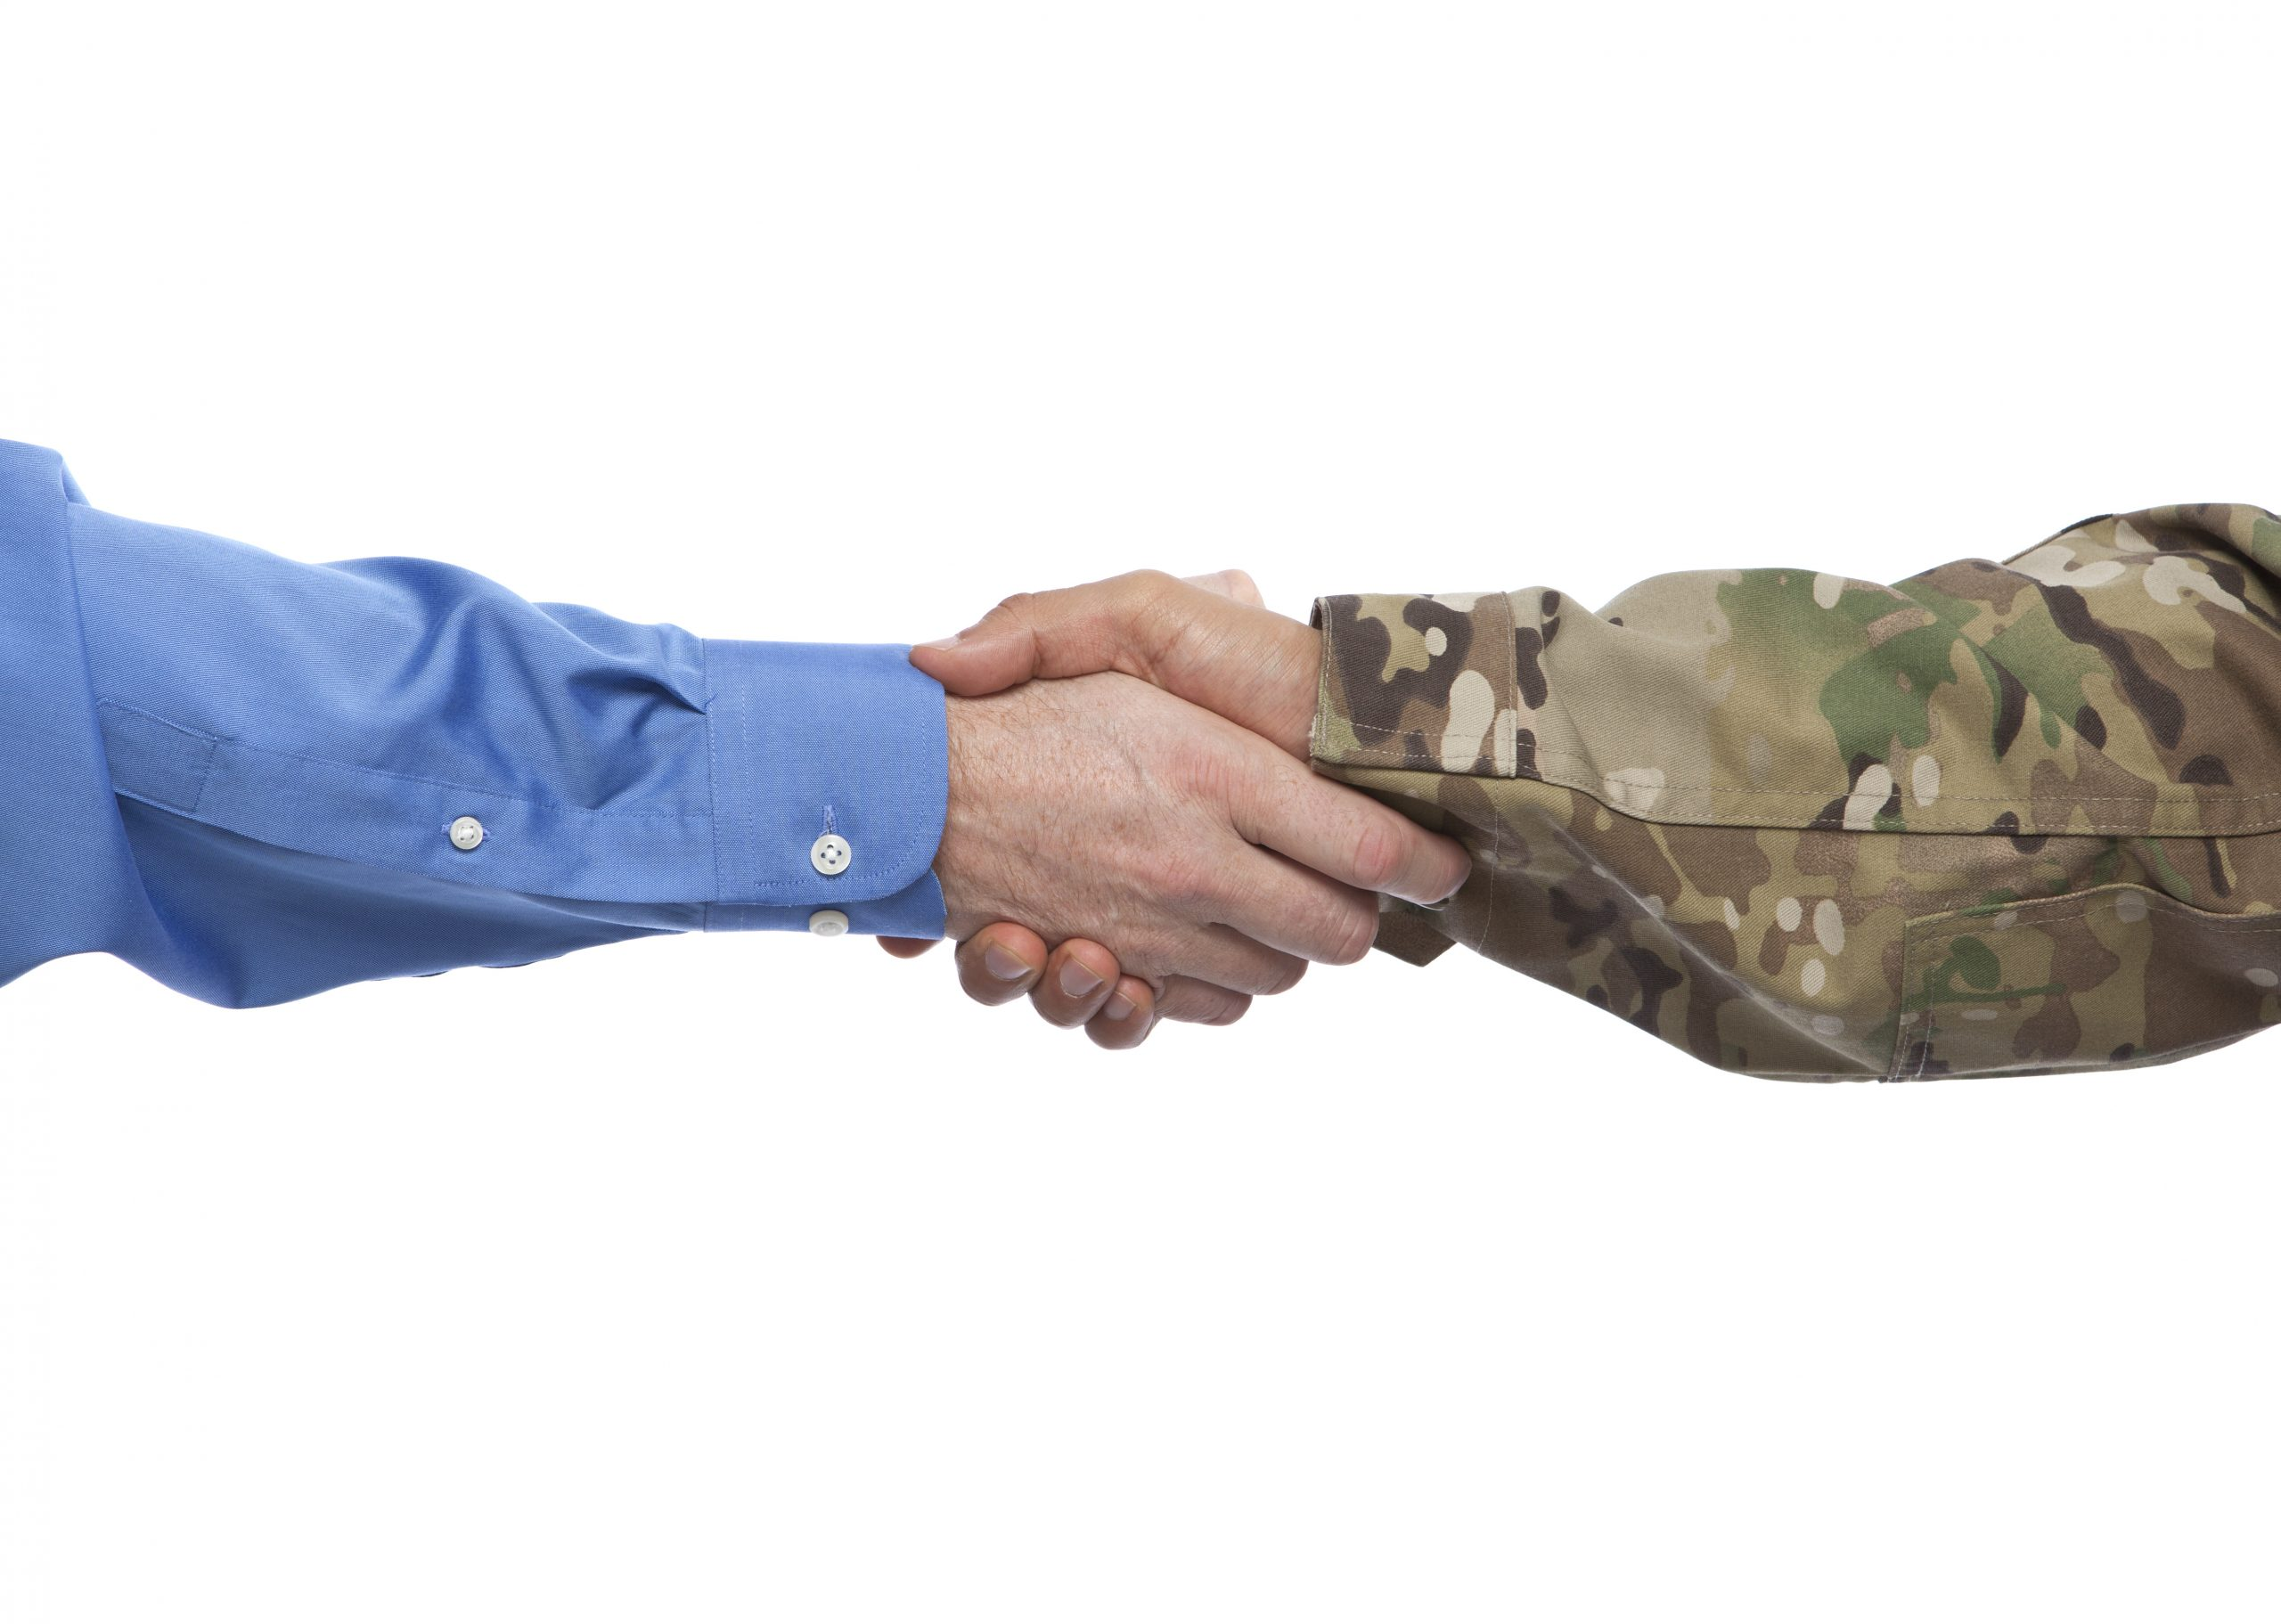 US Army solder shaking civilian business owner's hand